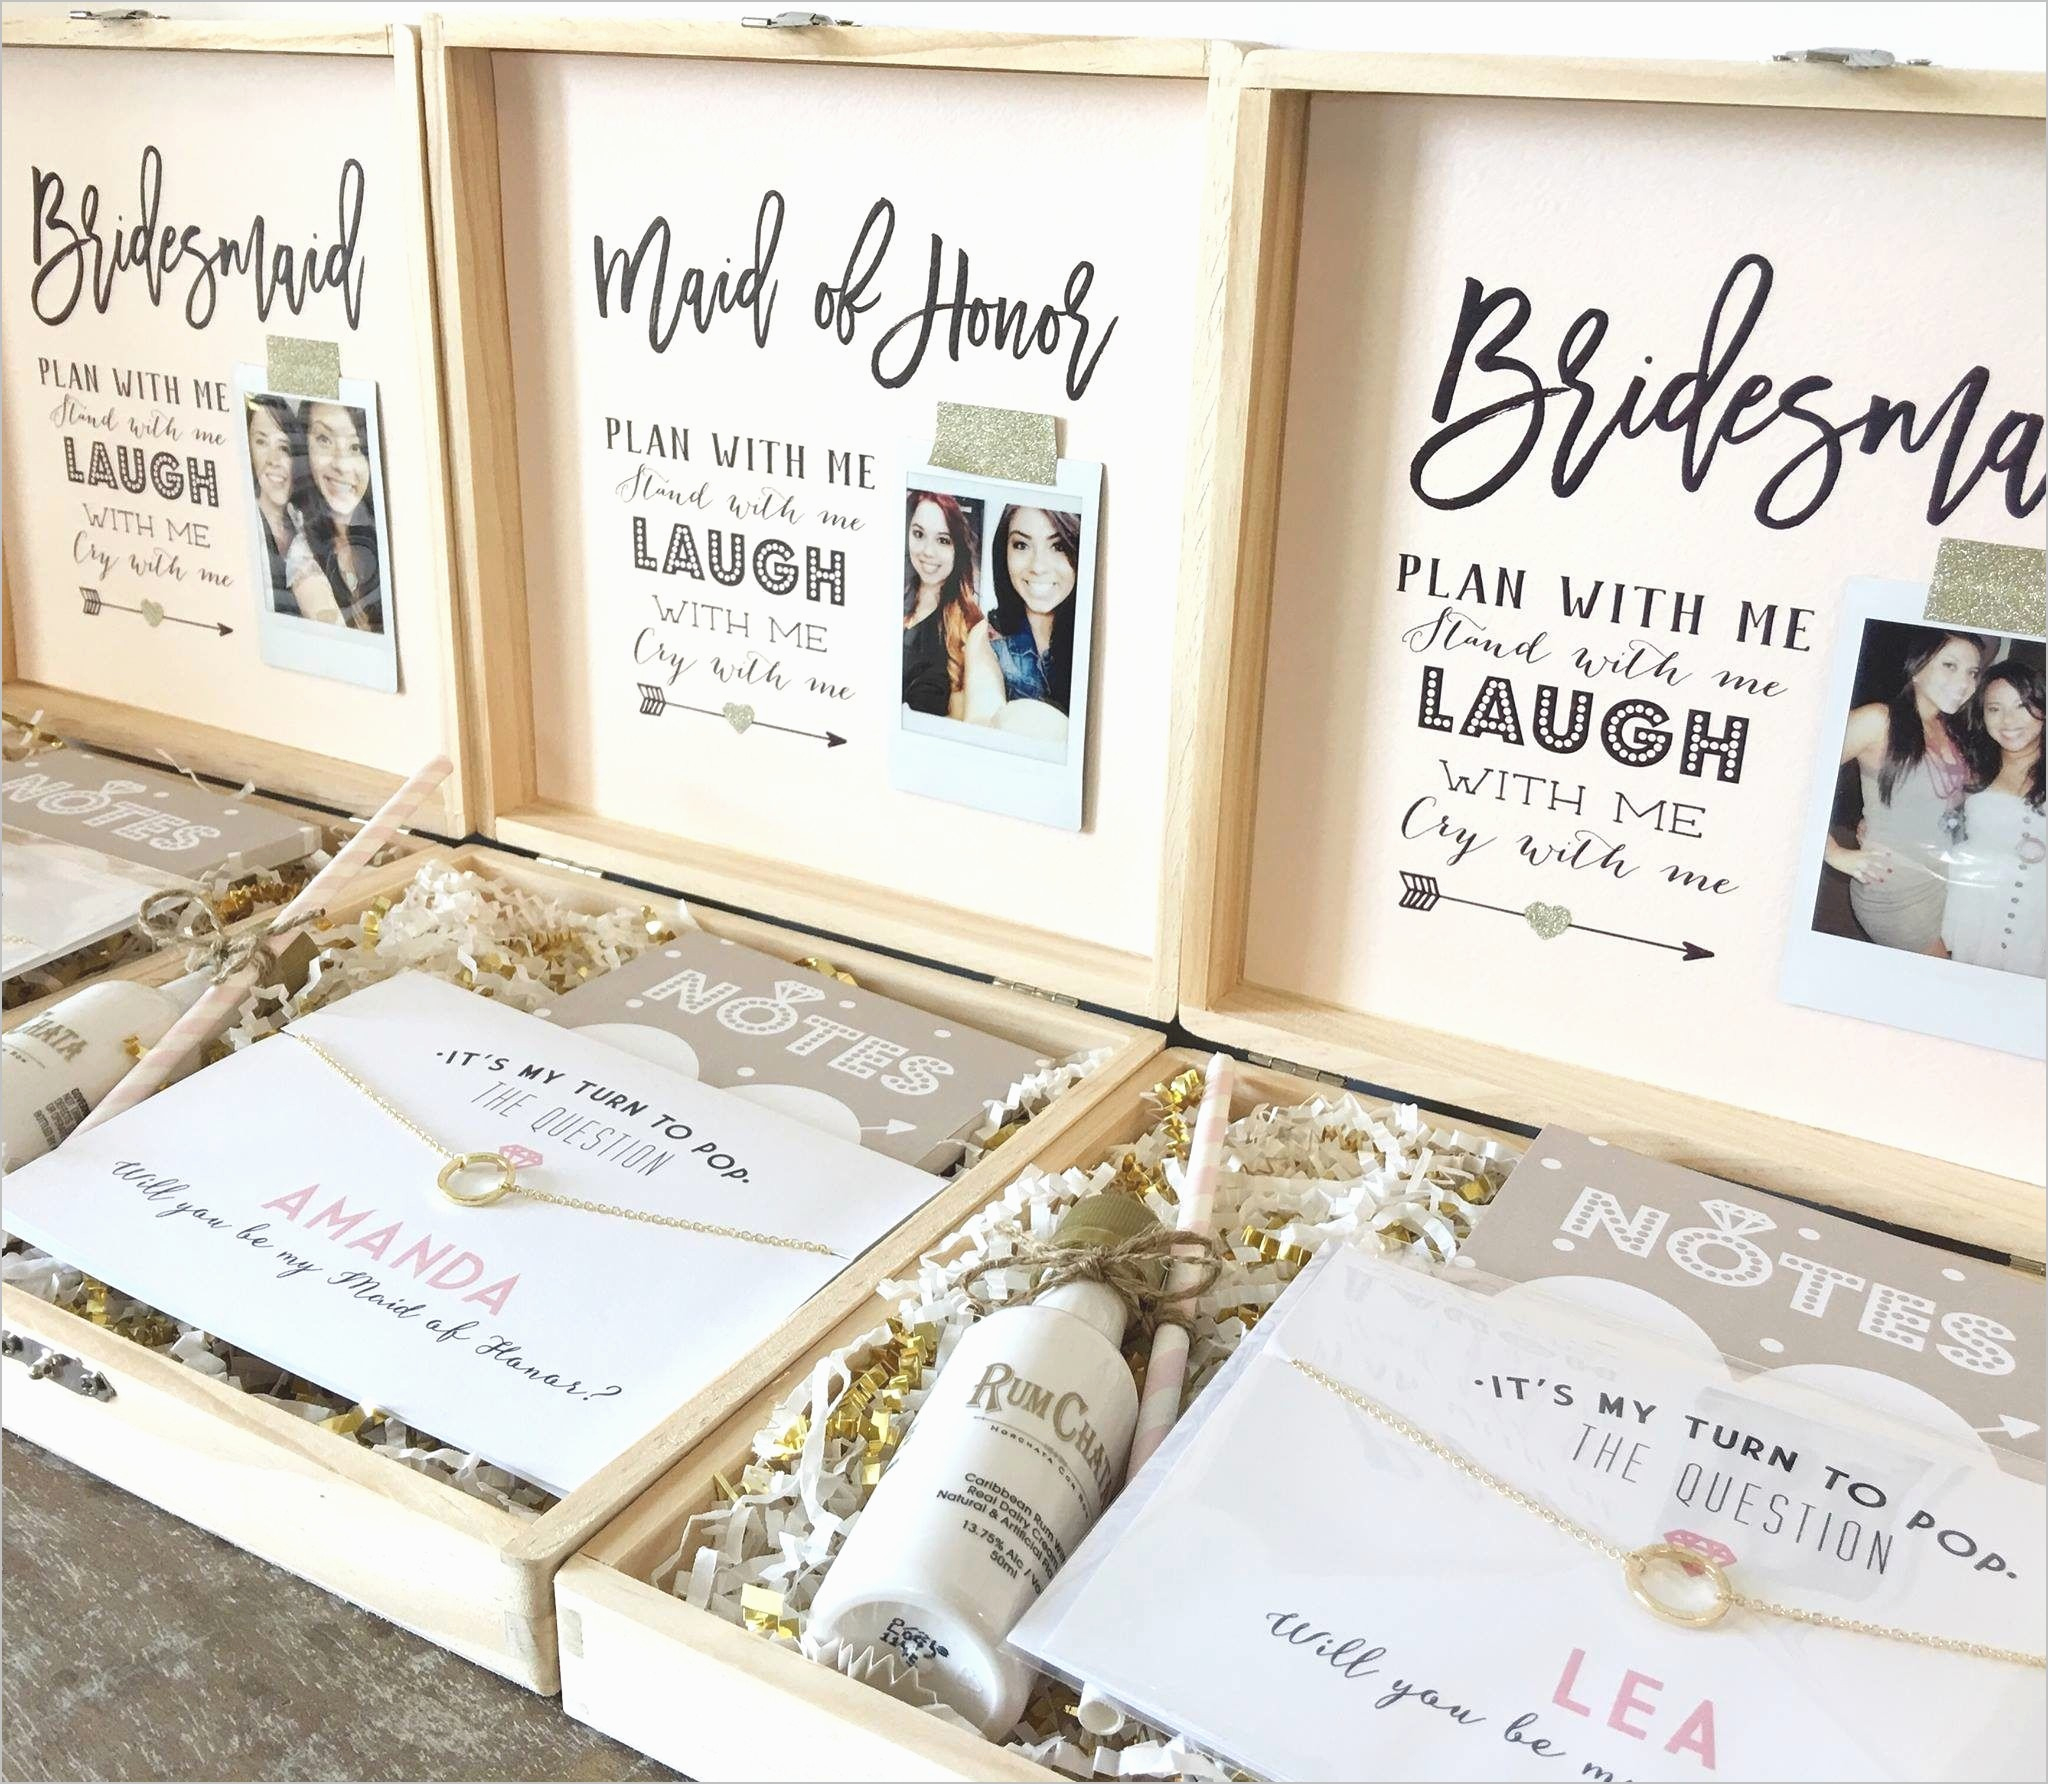 Will You Be My Bridesmaid Letter Template - Will You Be My Bridesmaid Letter Template New Bankruptcy Letter